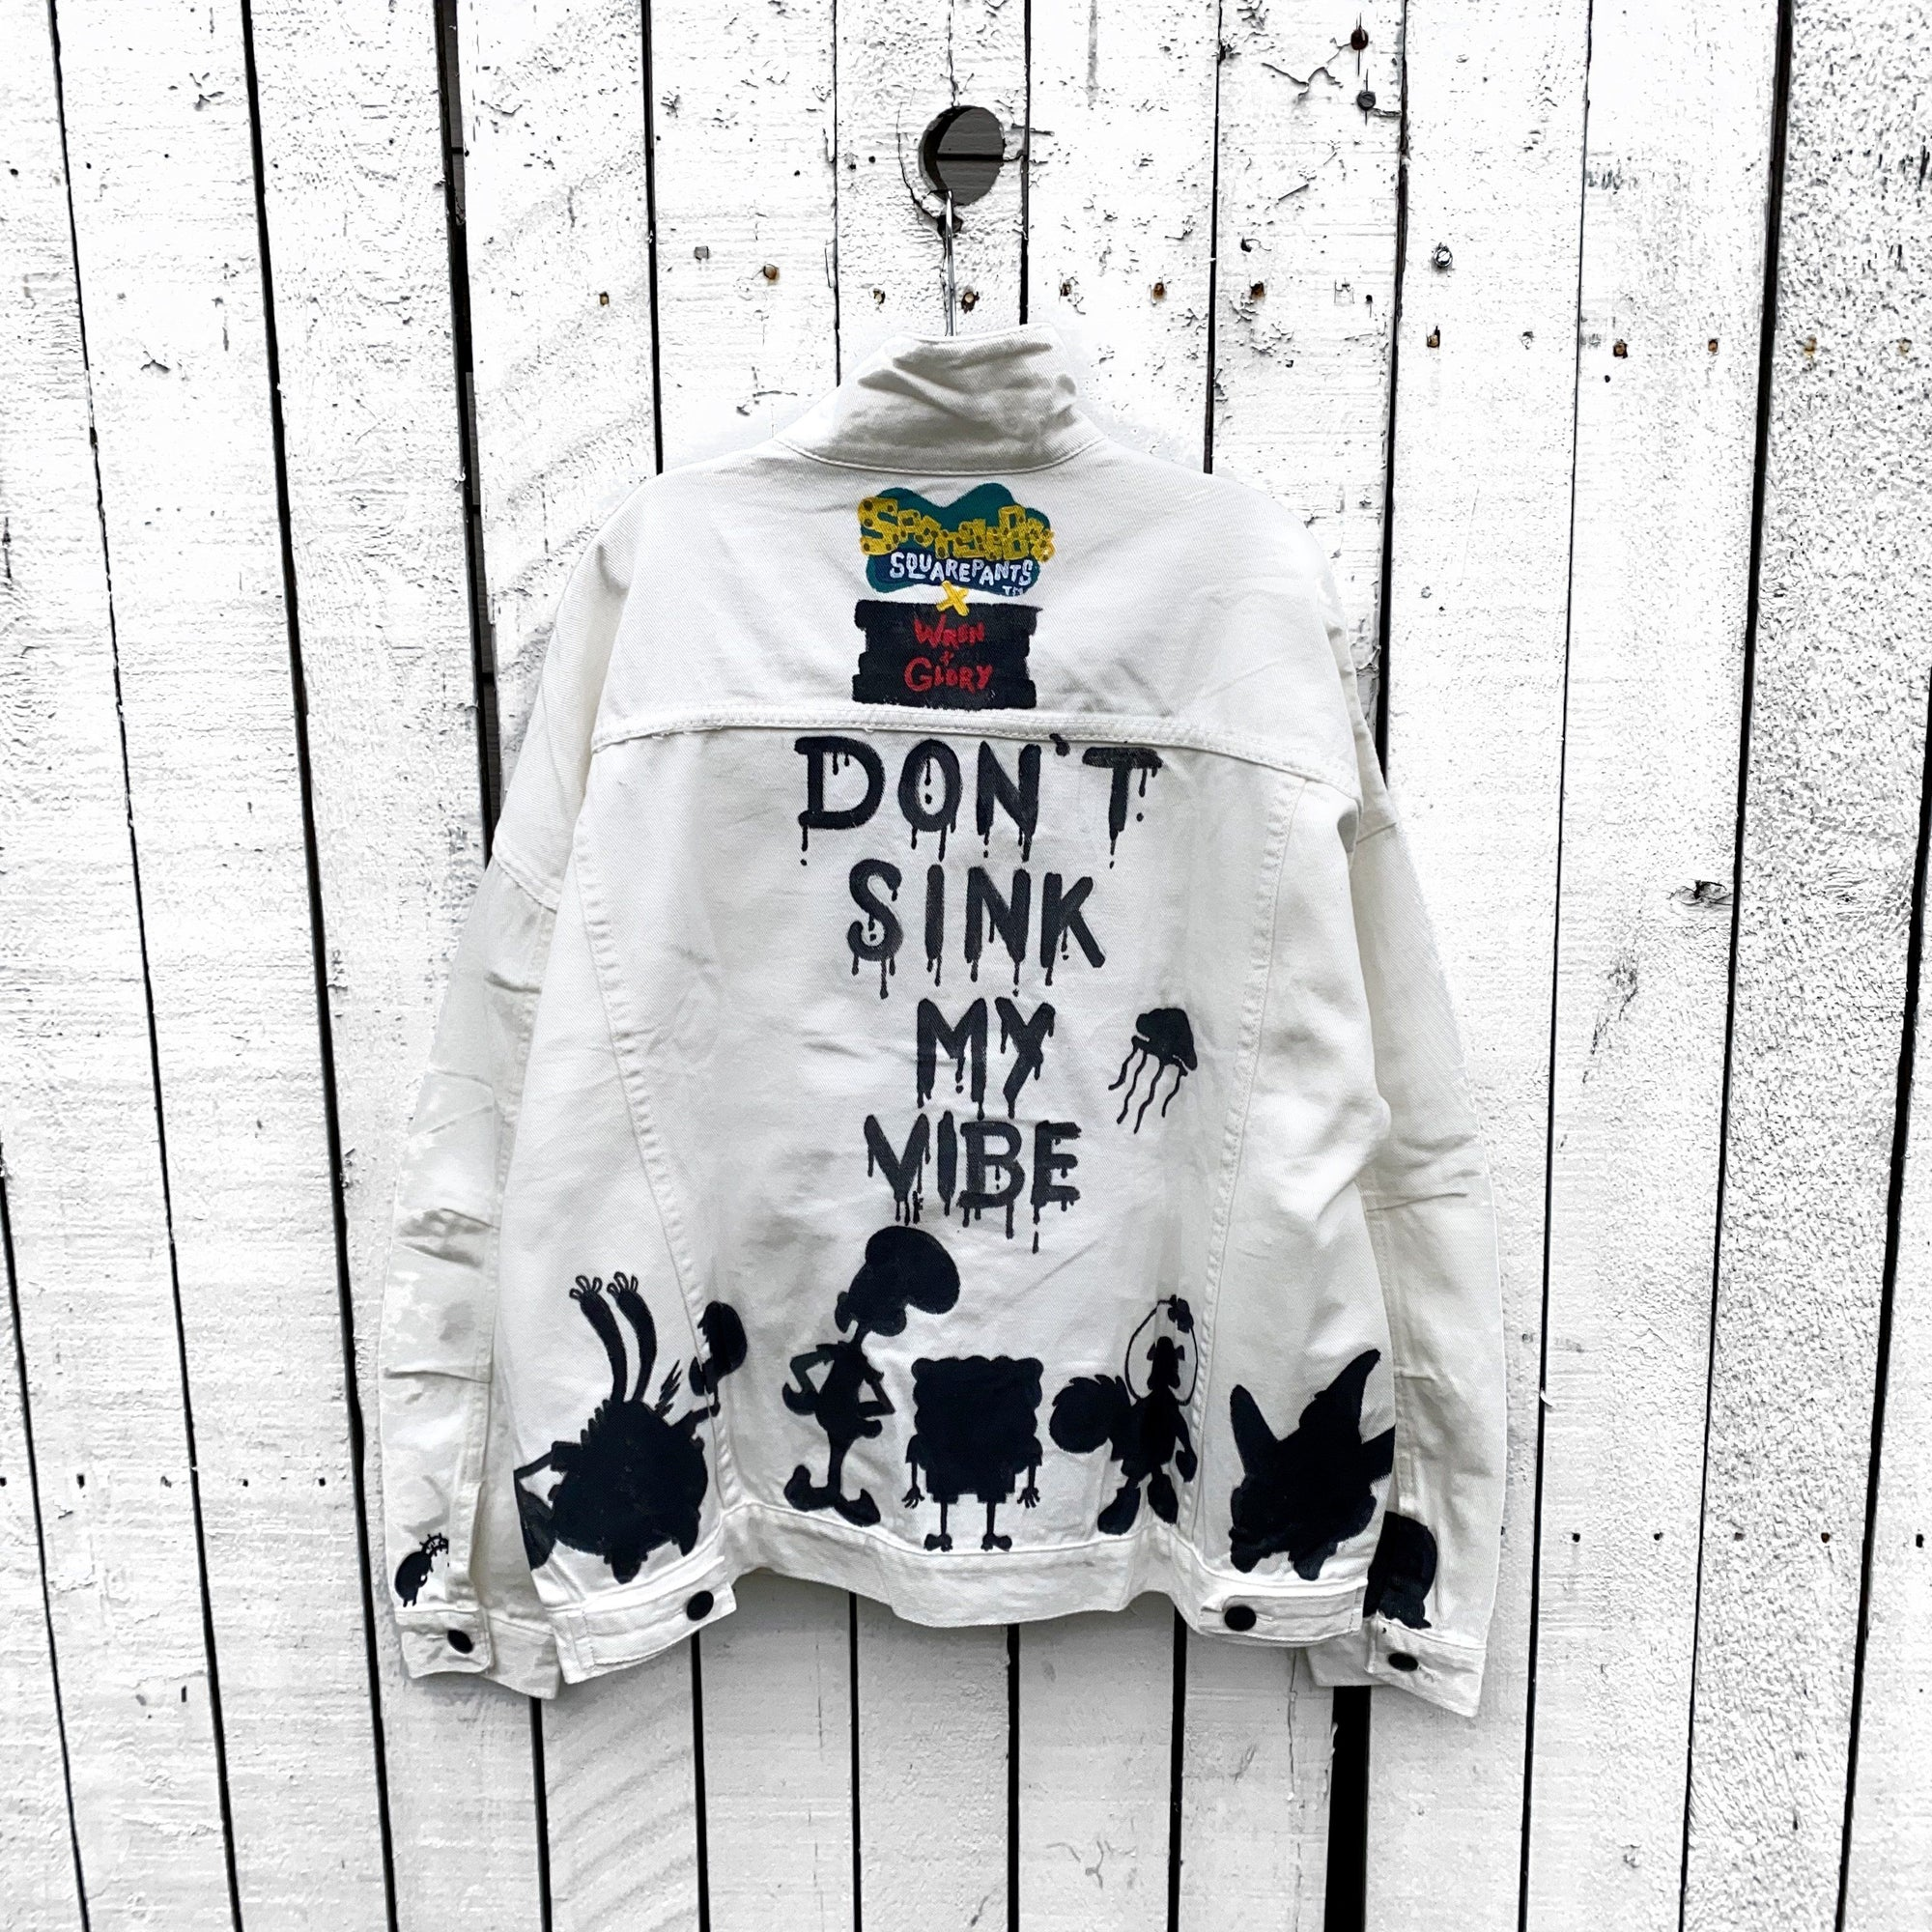 WG x SpongeBob SquarePants 'DONT SINK MY VIBE' DENIM JACKET